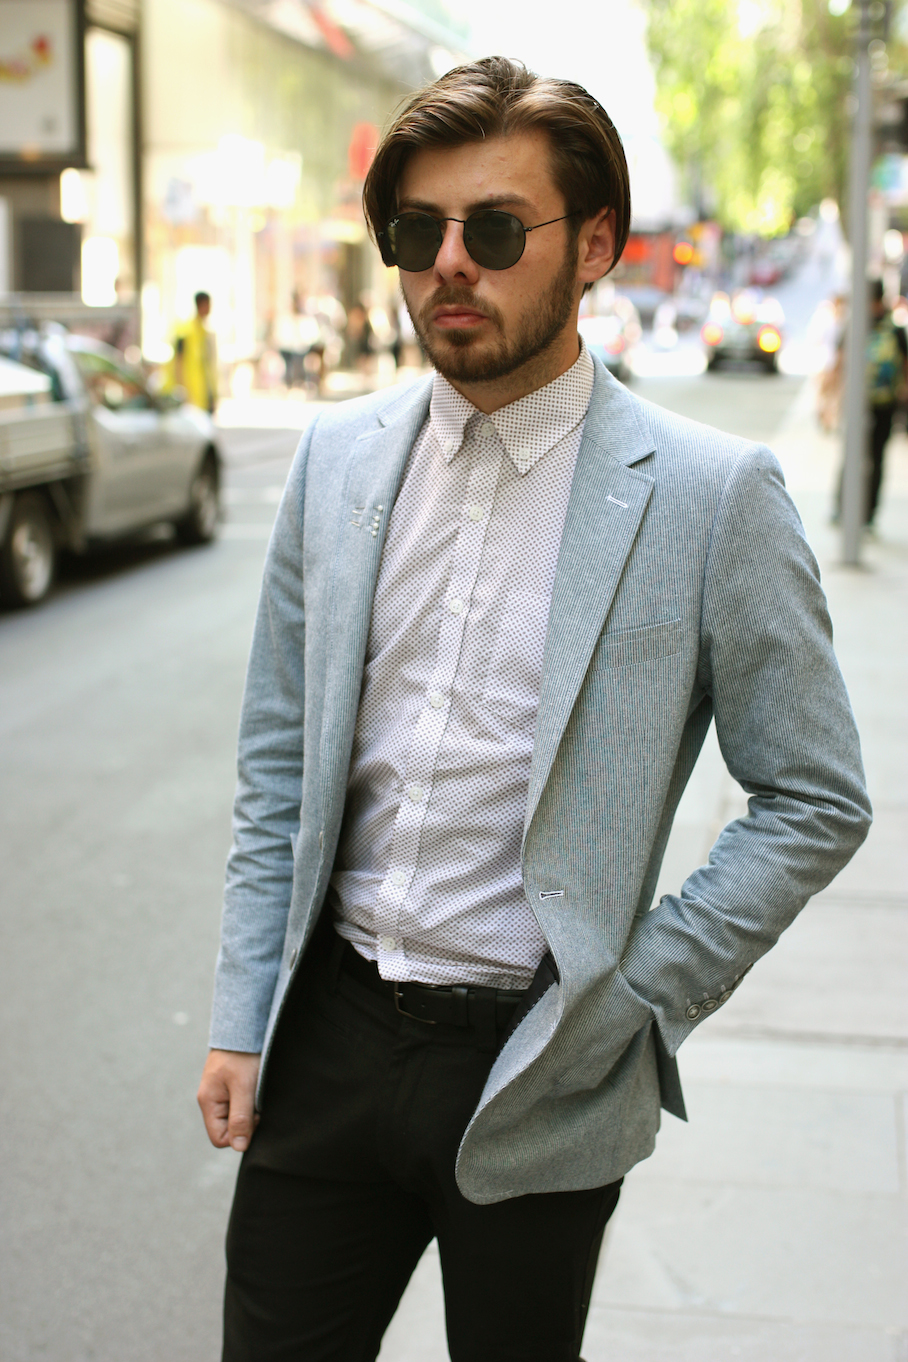 """Vic: Kieron Laity, Suit Tailor (Godwin Charli). """"The best dressed Welshman in Melbourne."""" Photo: <a href=""""http://www.marythamphotography.weebly.com/"""" target=""""_blank"""">Mary Tham </a>"""